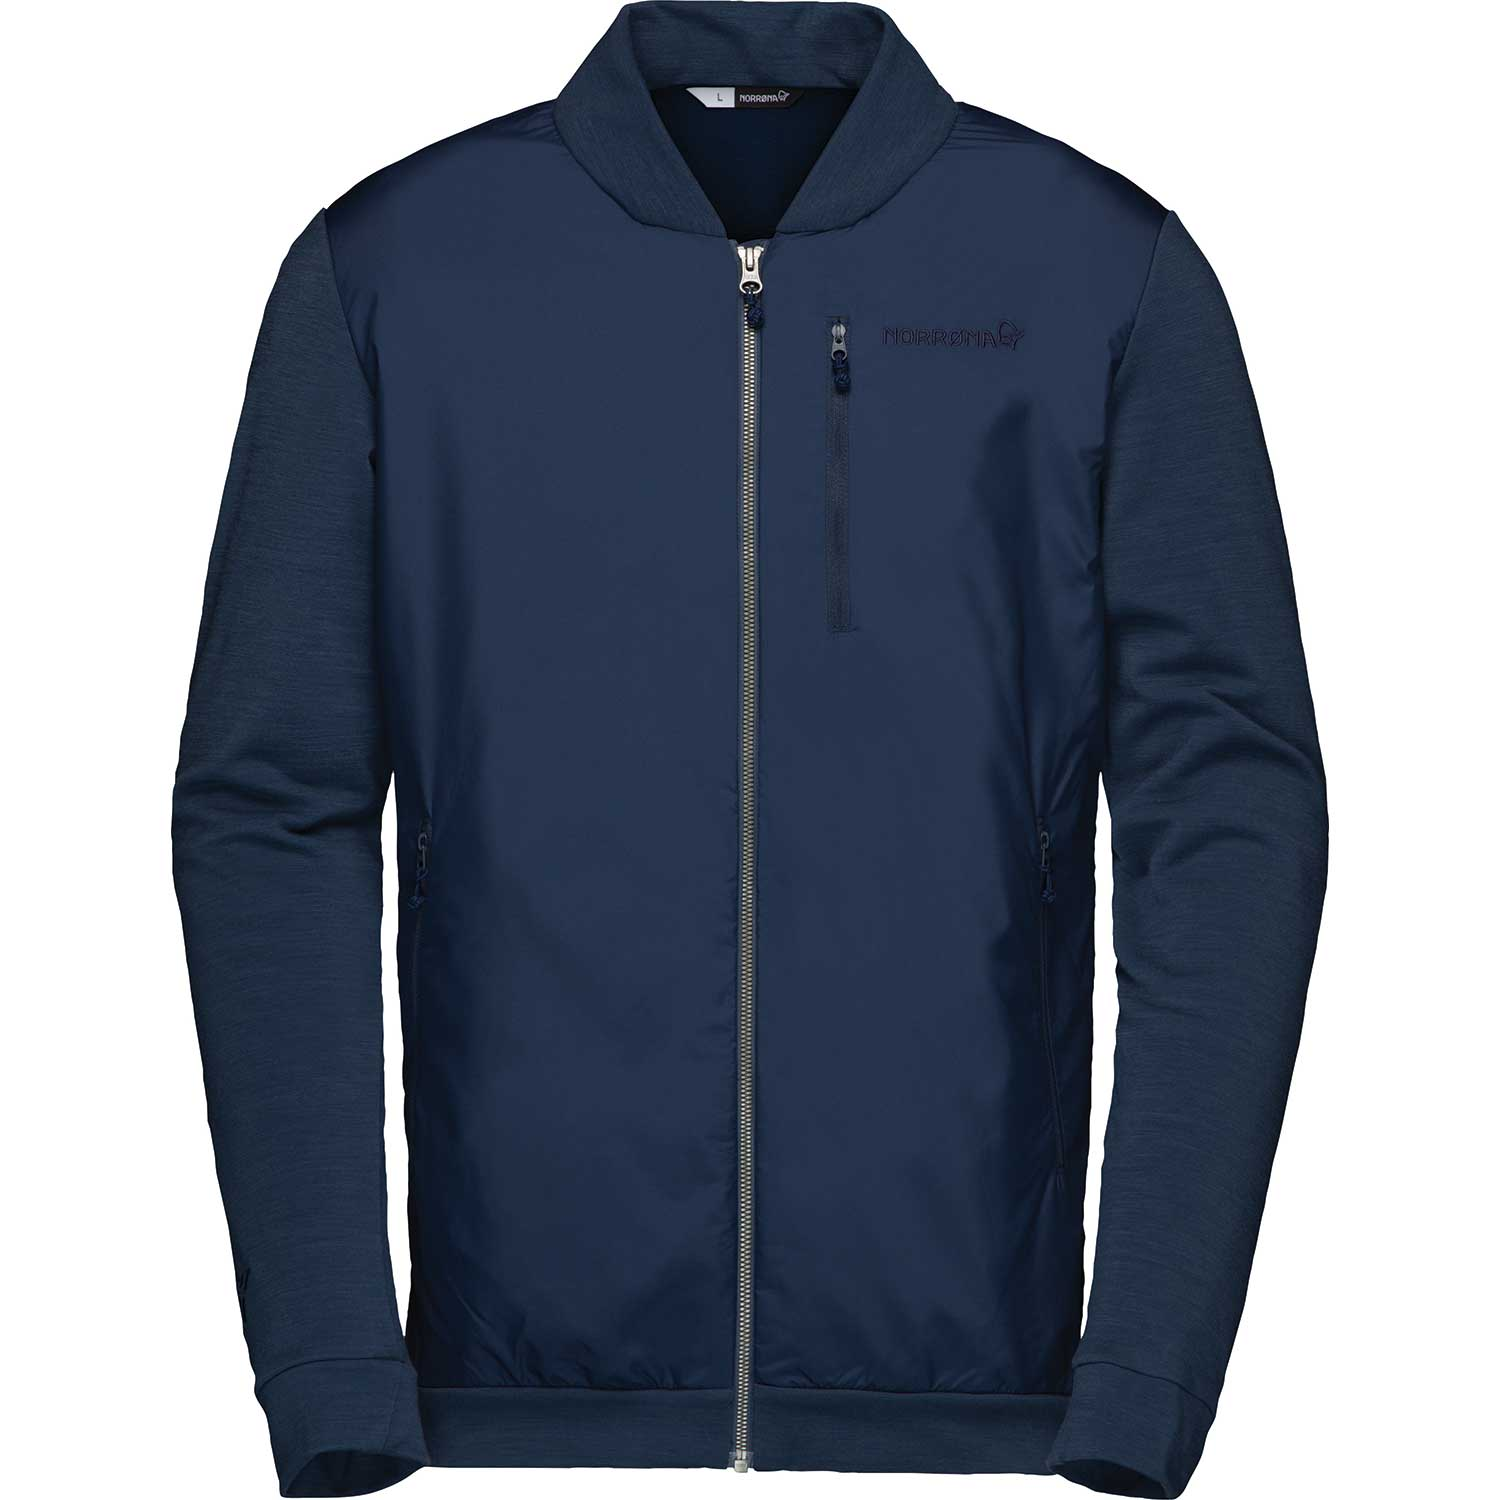 røldal warmwool1 Jacket (M)